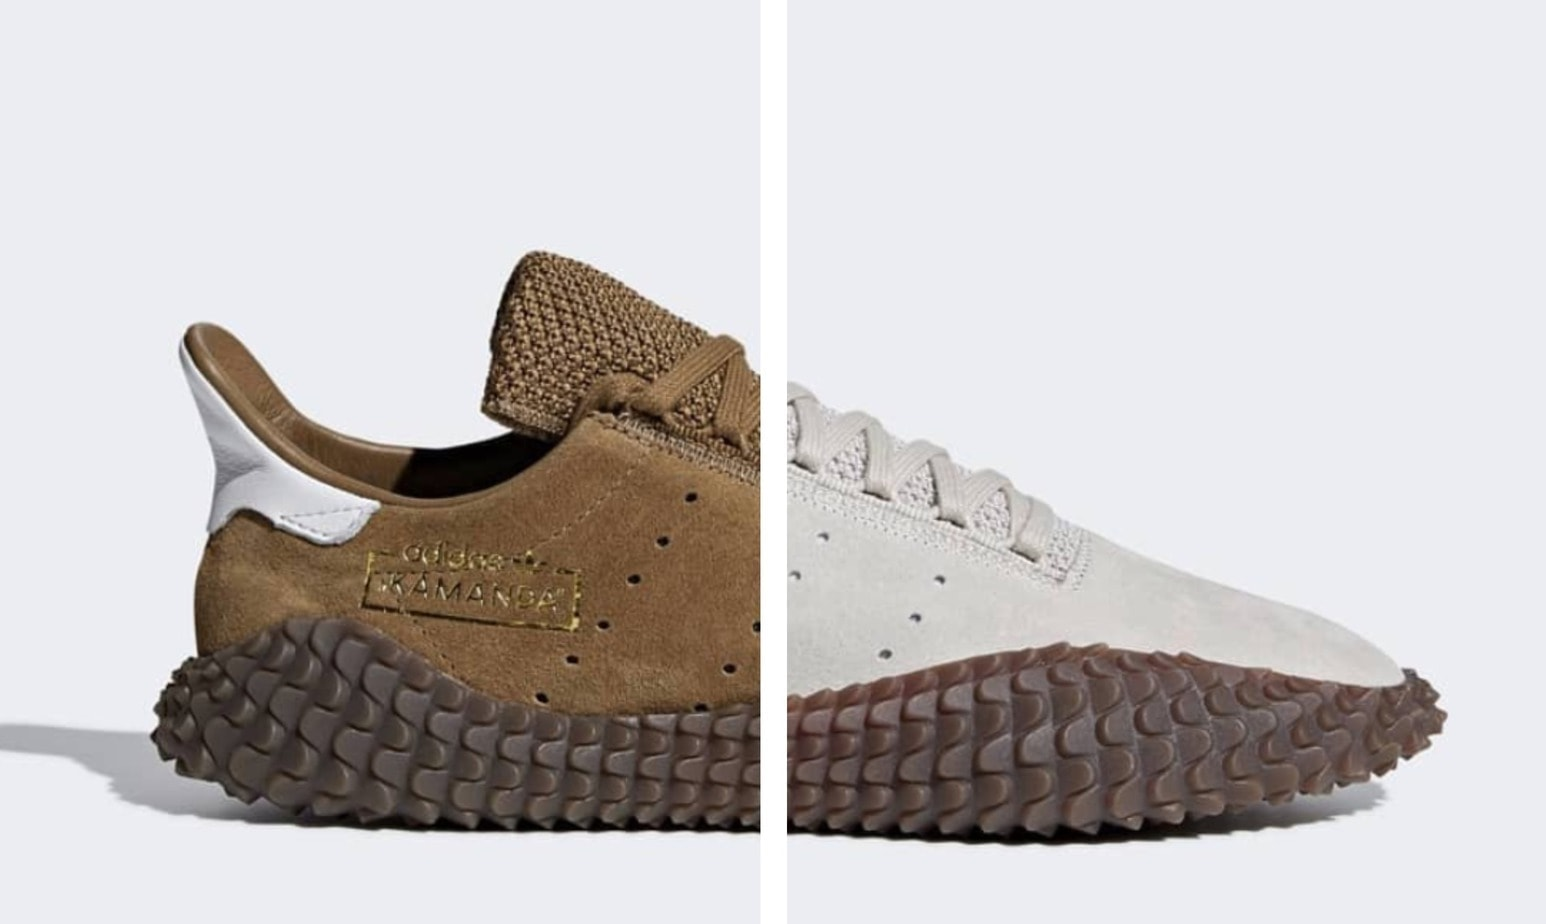 d6c6c28d4e7f The adidas Kamanda is back. After its initial debut earlier this year